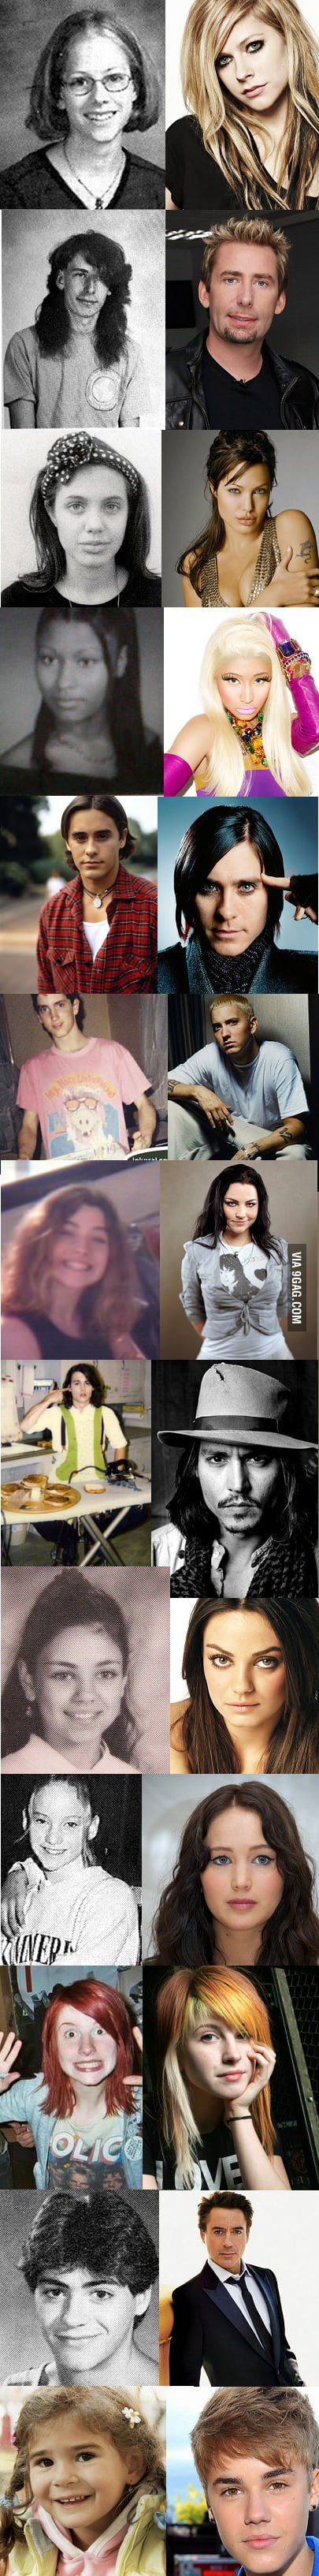 Famous people when they were younger